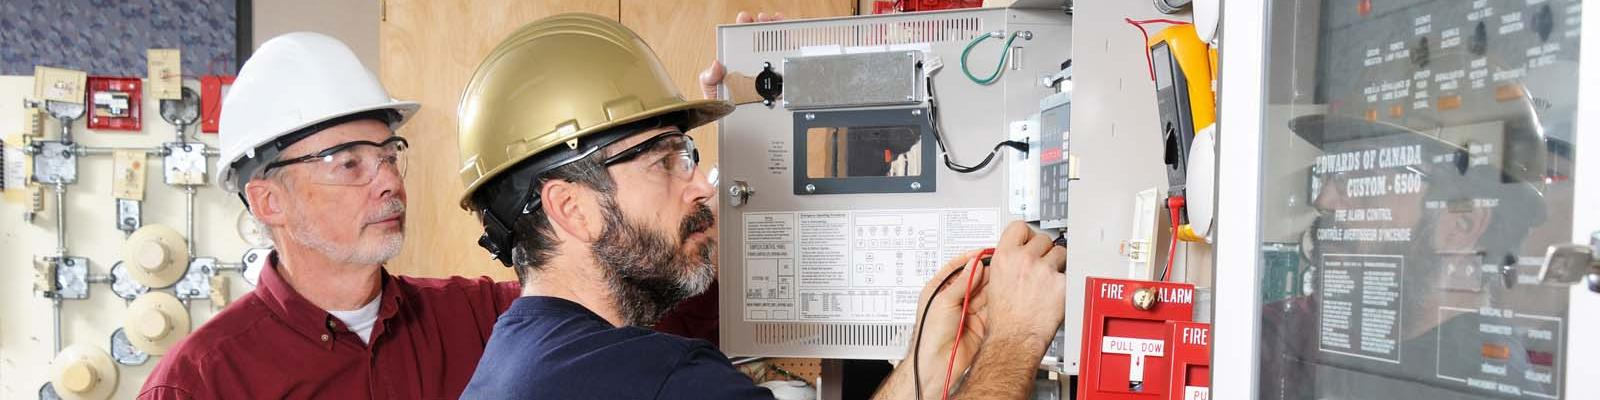 Apprentice electrician being mentored by a journeyman electrician